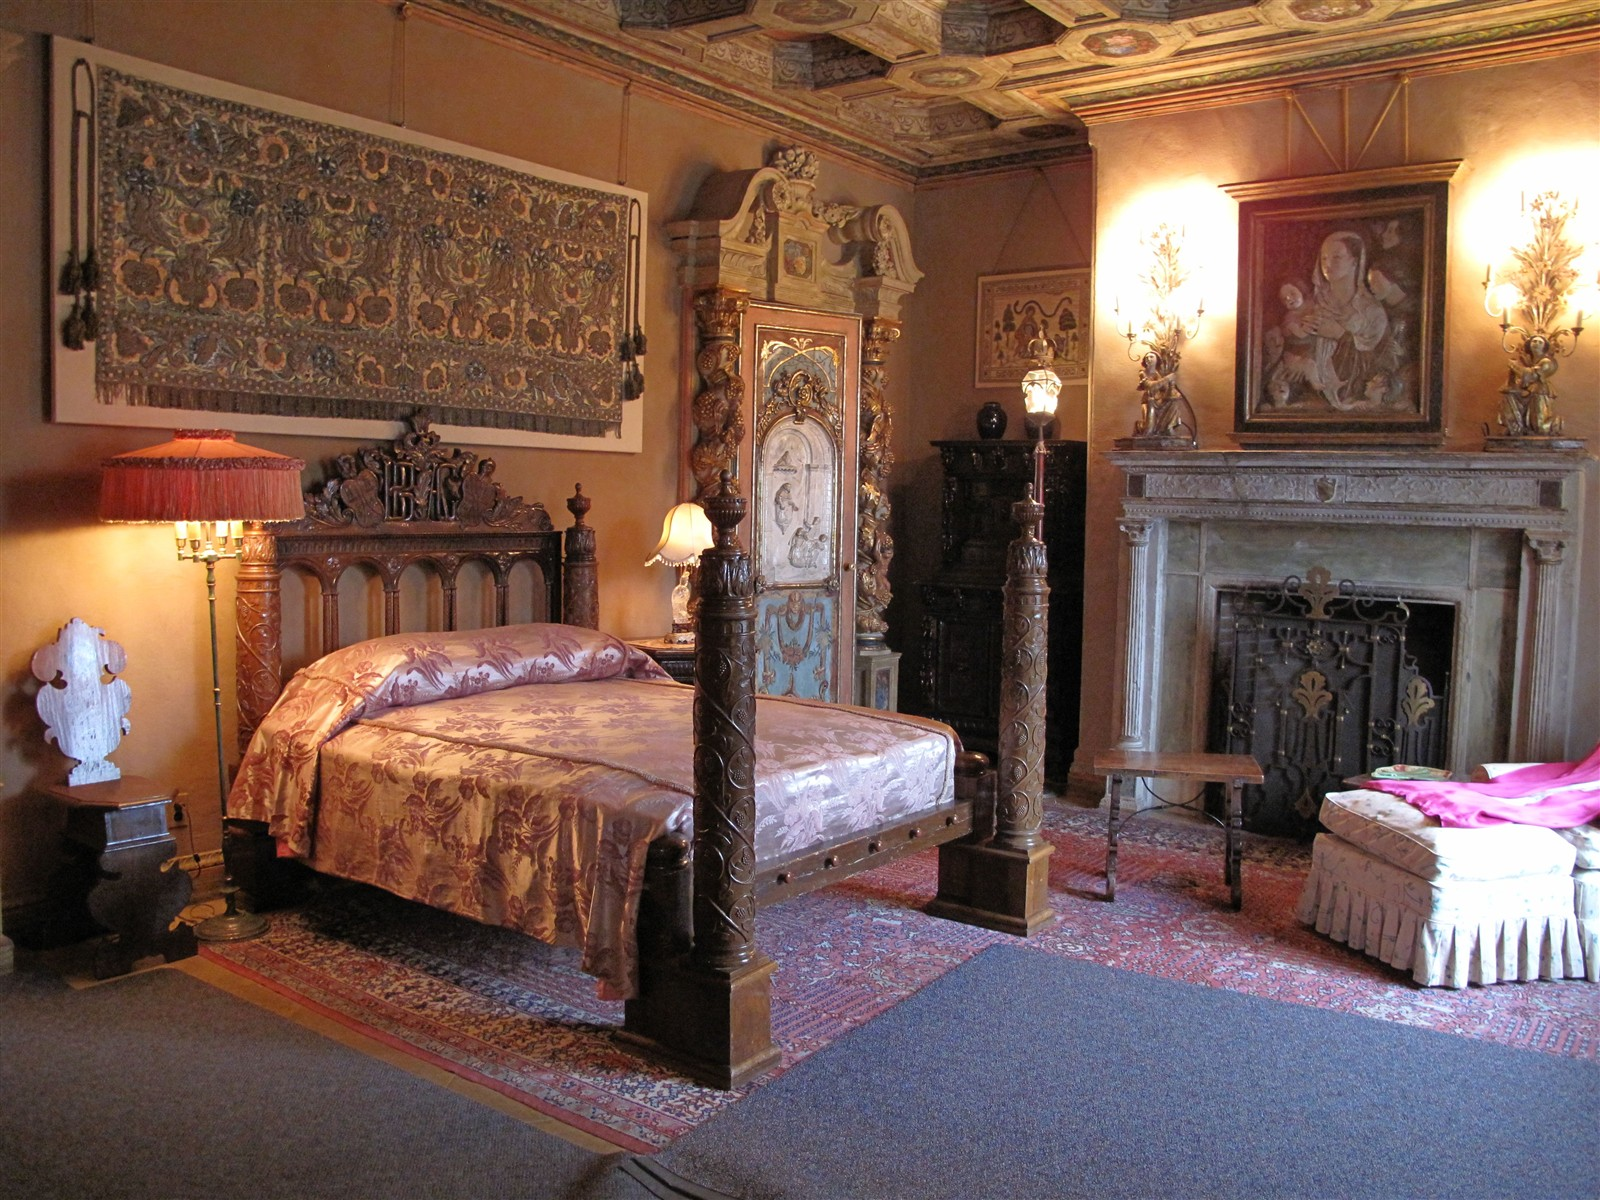 hearst castle bedroom img 0247 len gee galleries